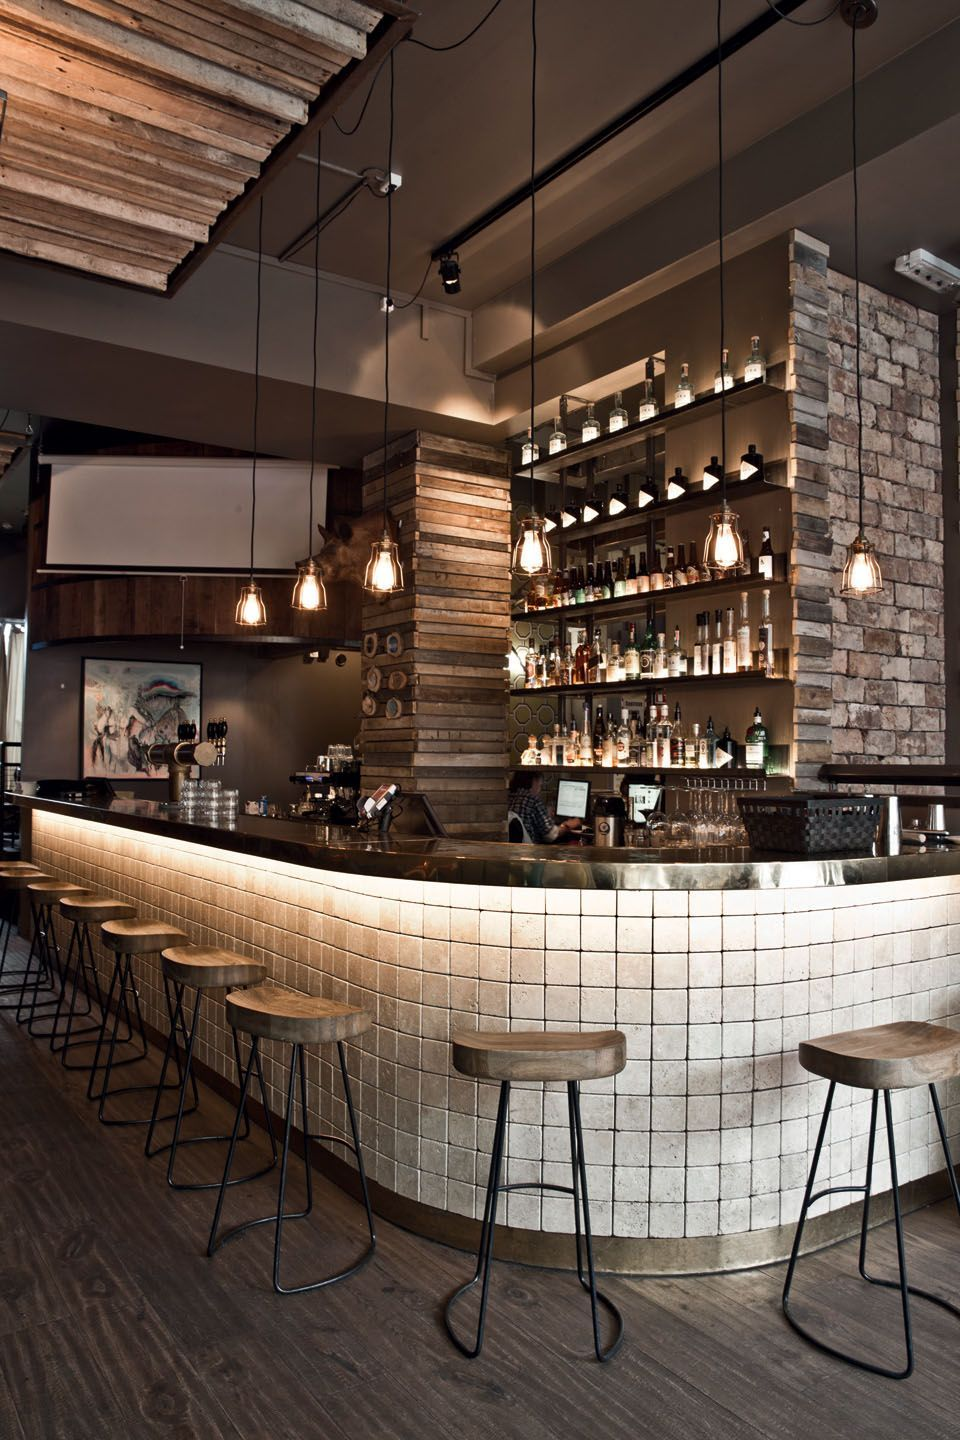 Working on a bar decor project? Find out the best lighting fixtures for your interior design project at luxxu.net  #luxury #bar #designideas #bardesign #lighting #interiordesign